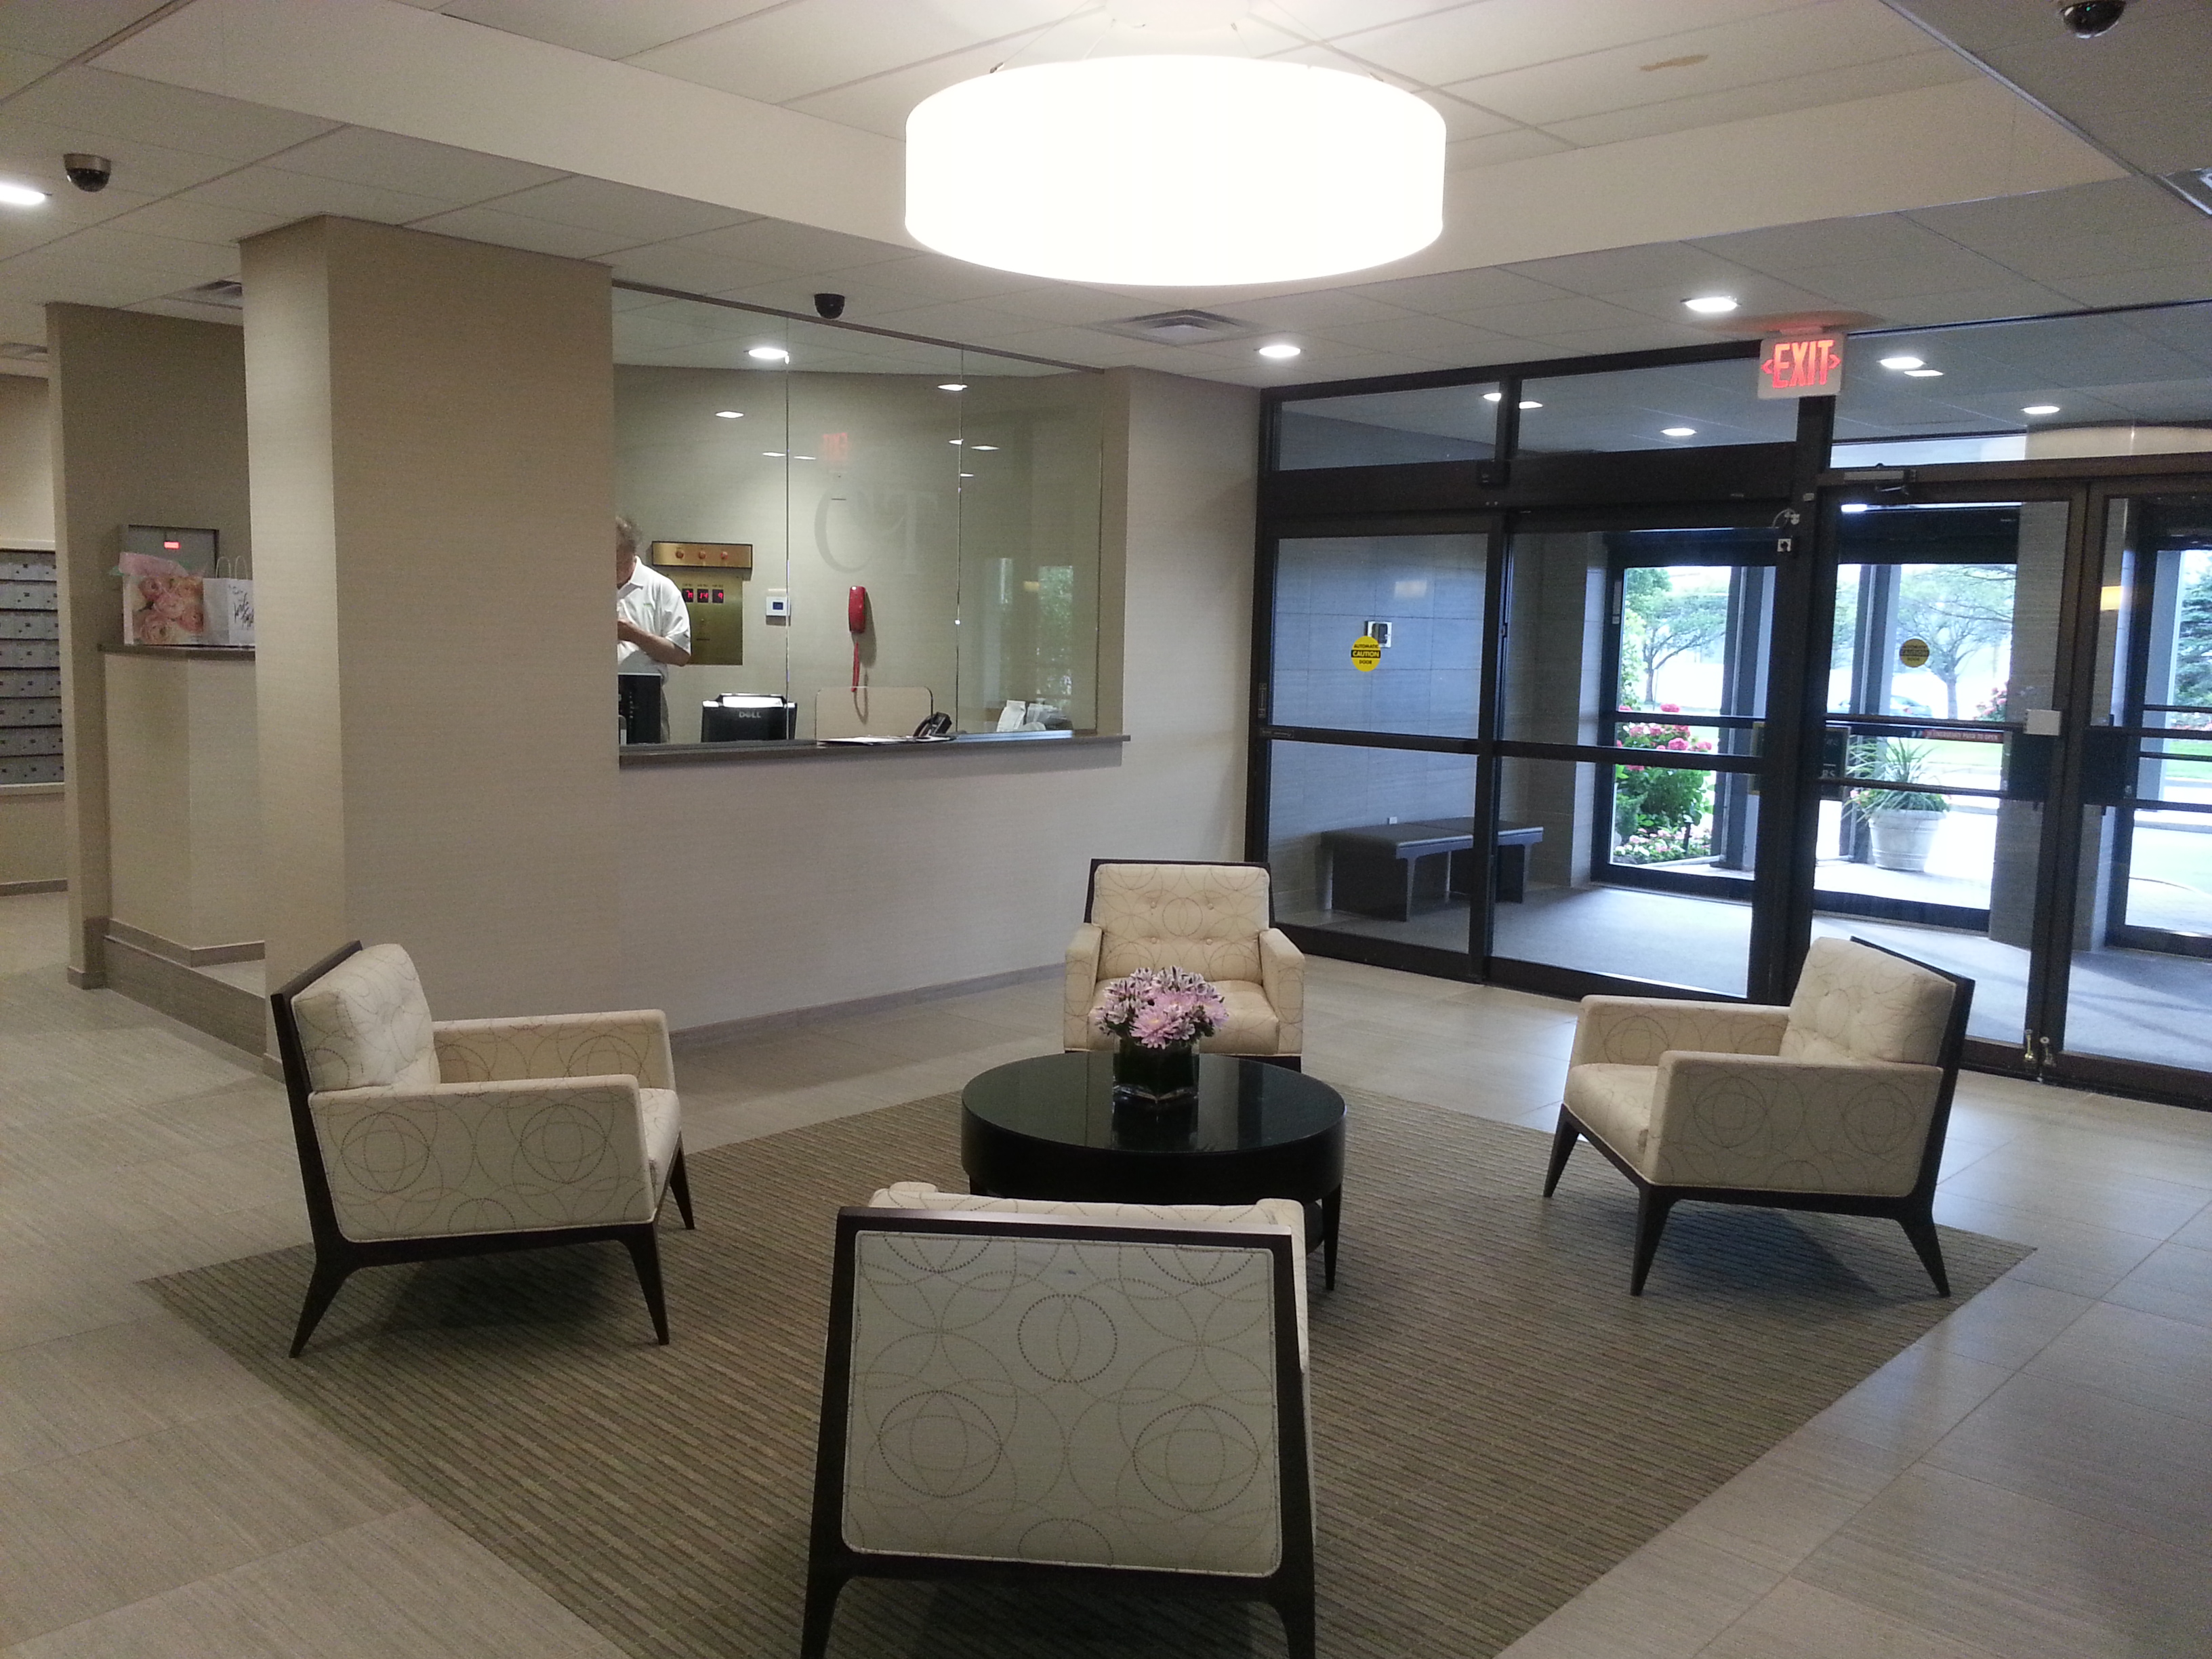 Recently remodeled, the lobby has a concierge desk manned 24 hours a day for optimum security.